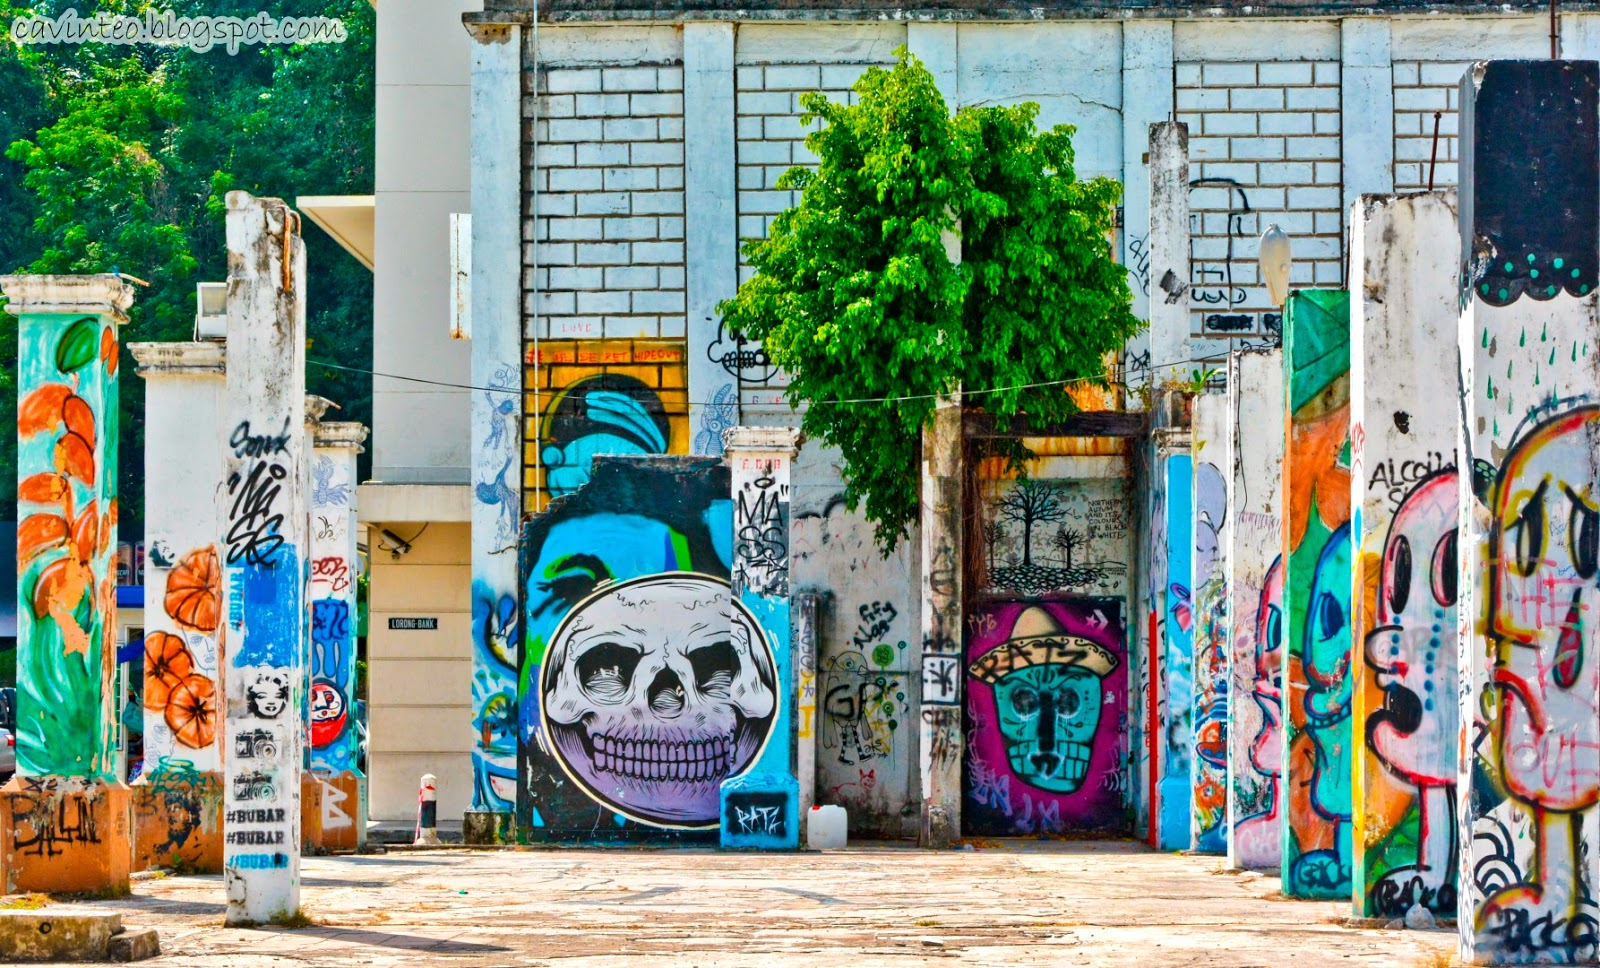 Graffiti House Across Suria Sabah The Arena For Colourful Street Art Click Here For The Separate Posting